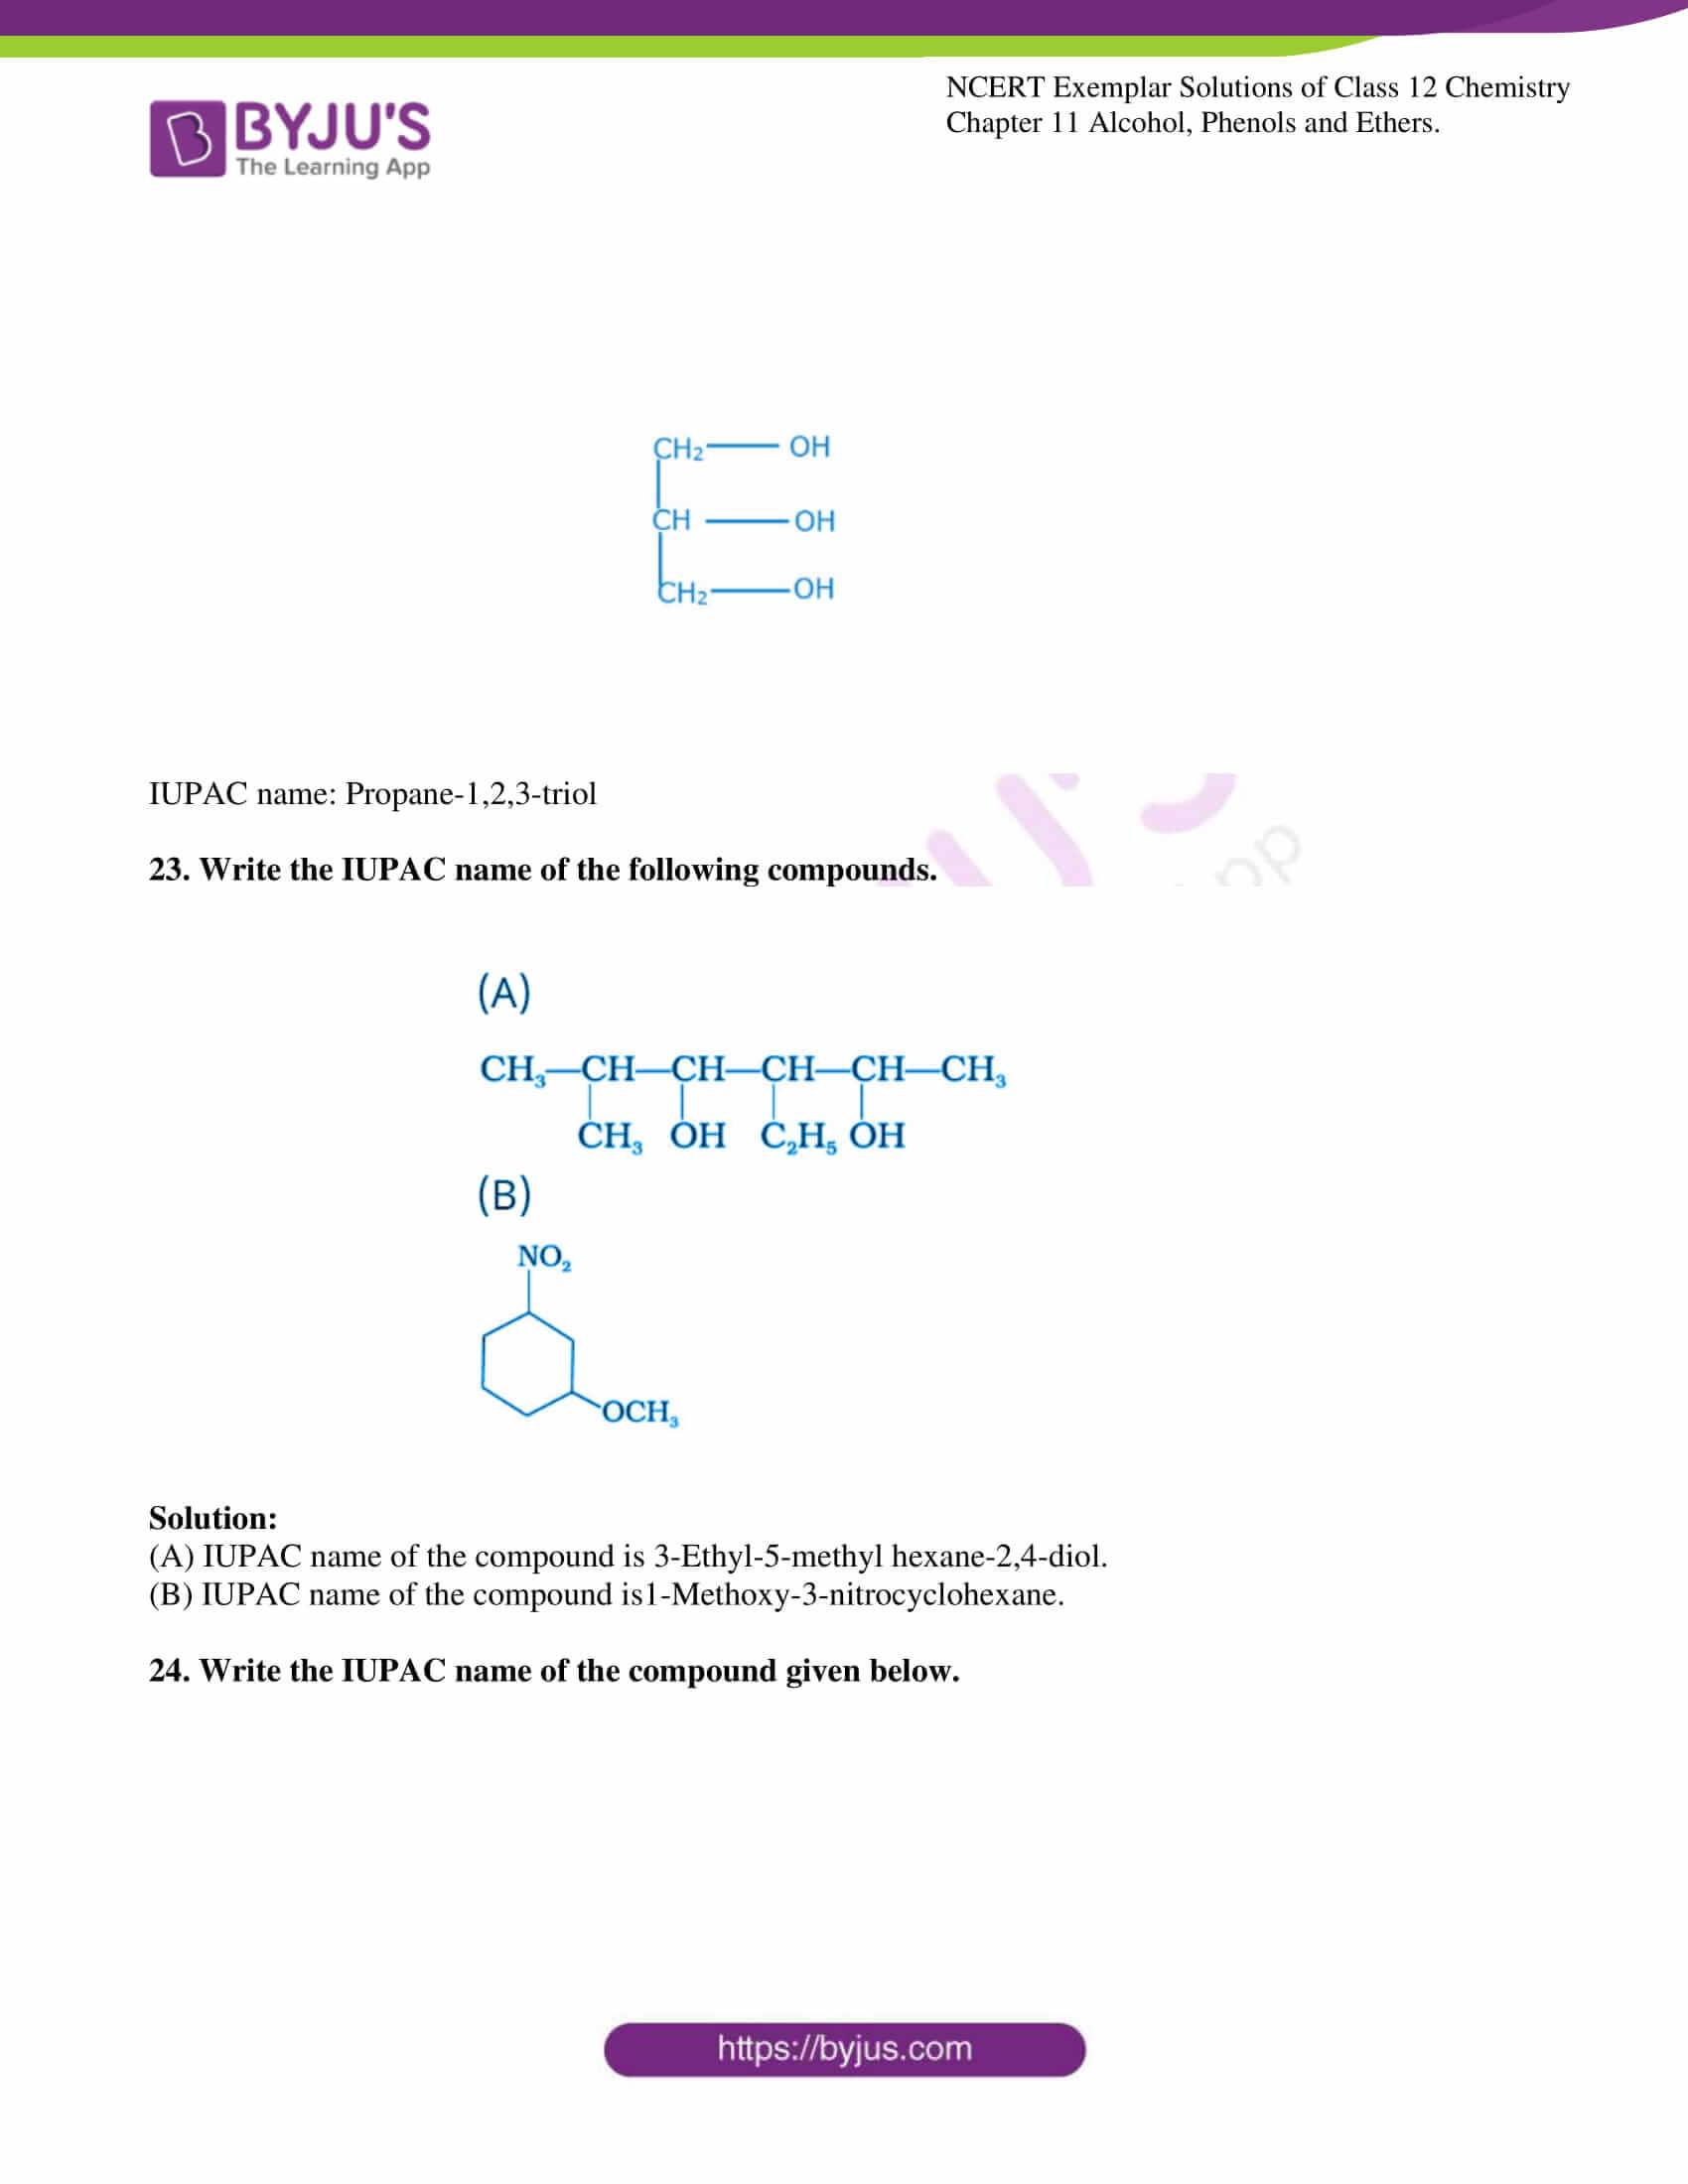 ncert exemplar solutions for class 12 chemistry chapter 11 07